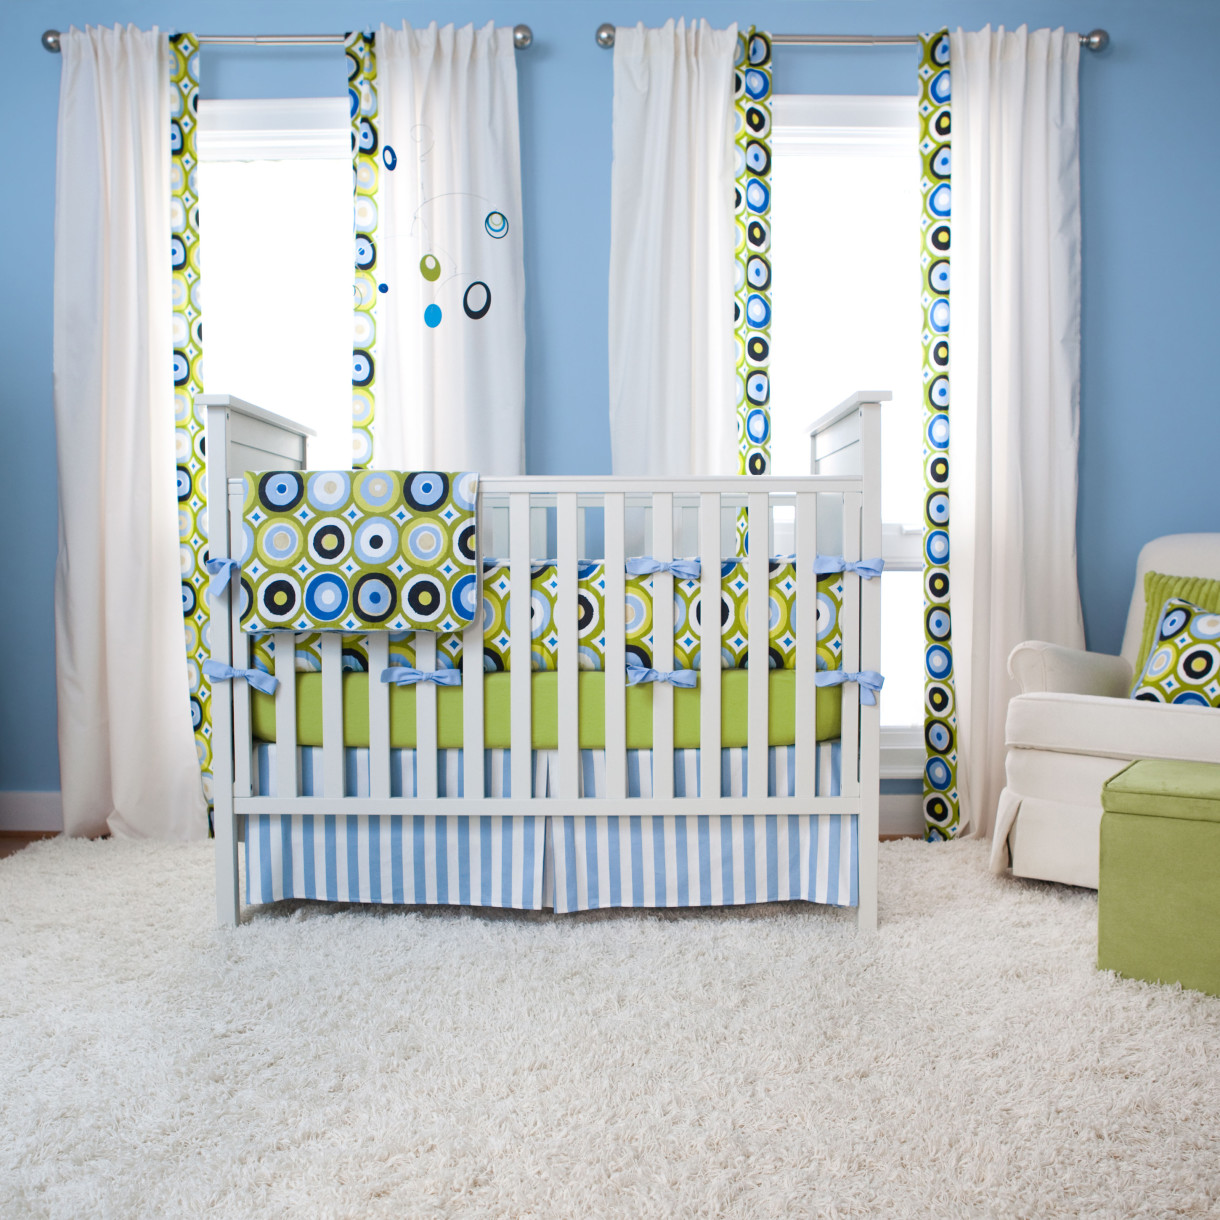 White Wooden Munire Crib With Colorful Mattress On Wooden Floor With White Carpet Matched With Blue Wall With White Window Plus Curtain For Nursery Decor Ideas